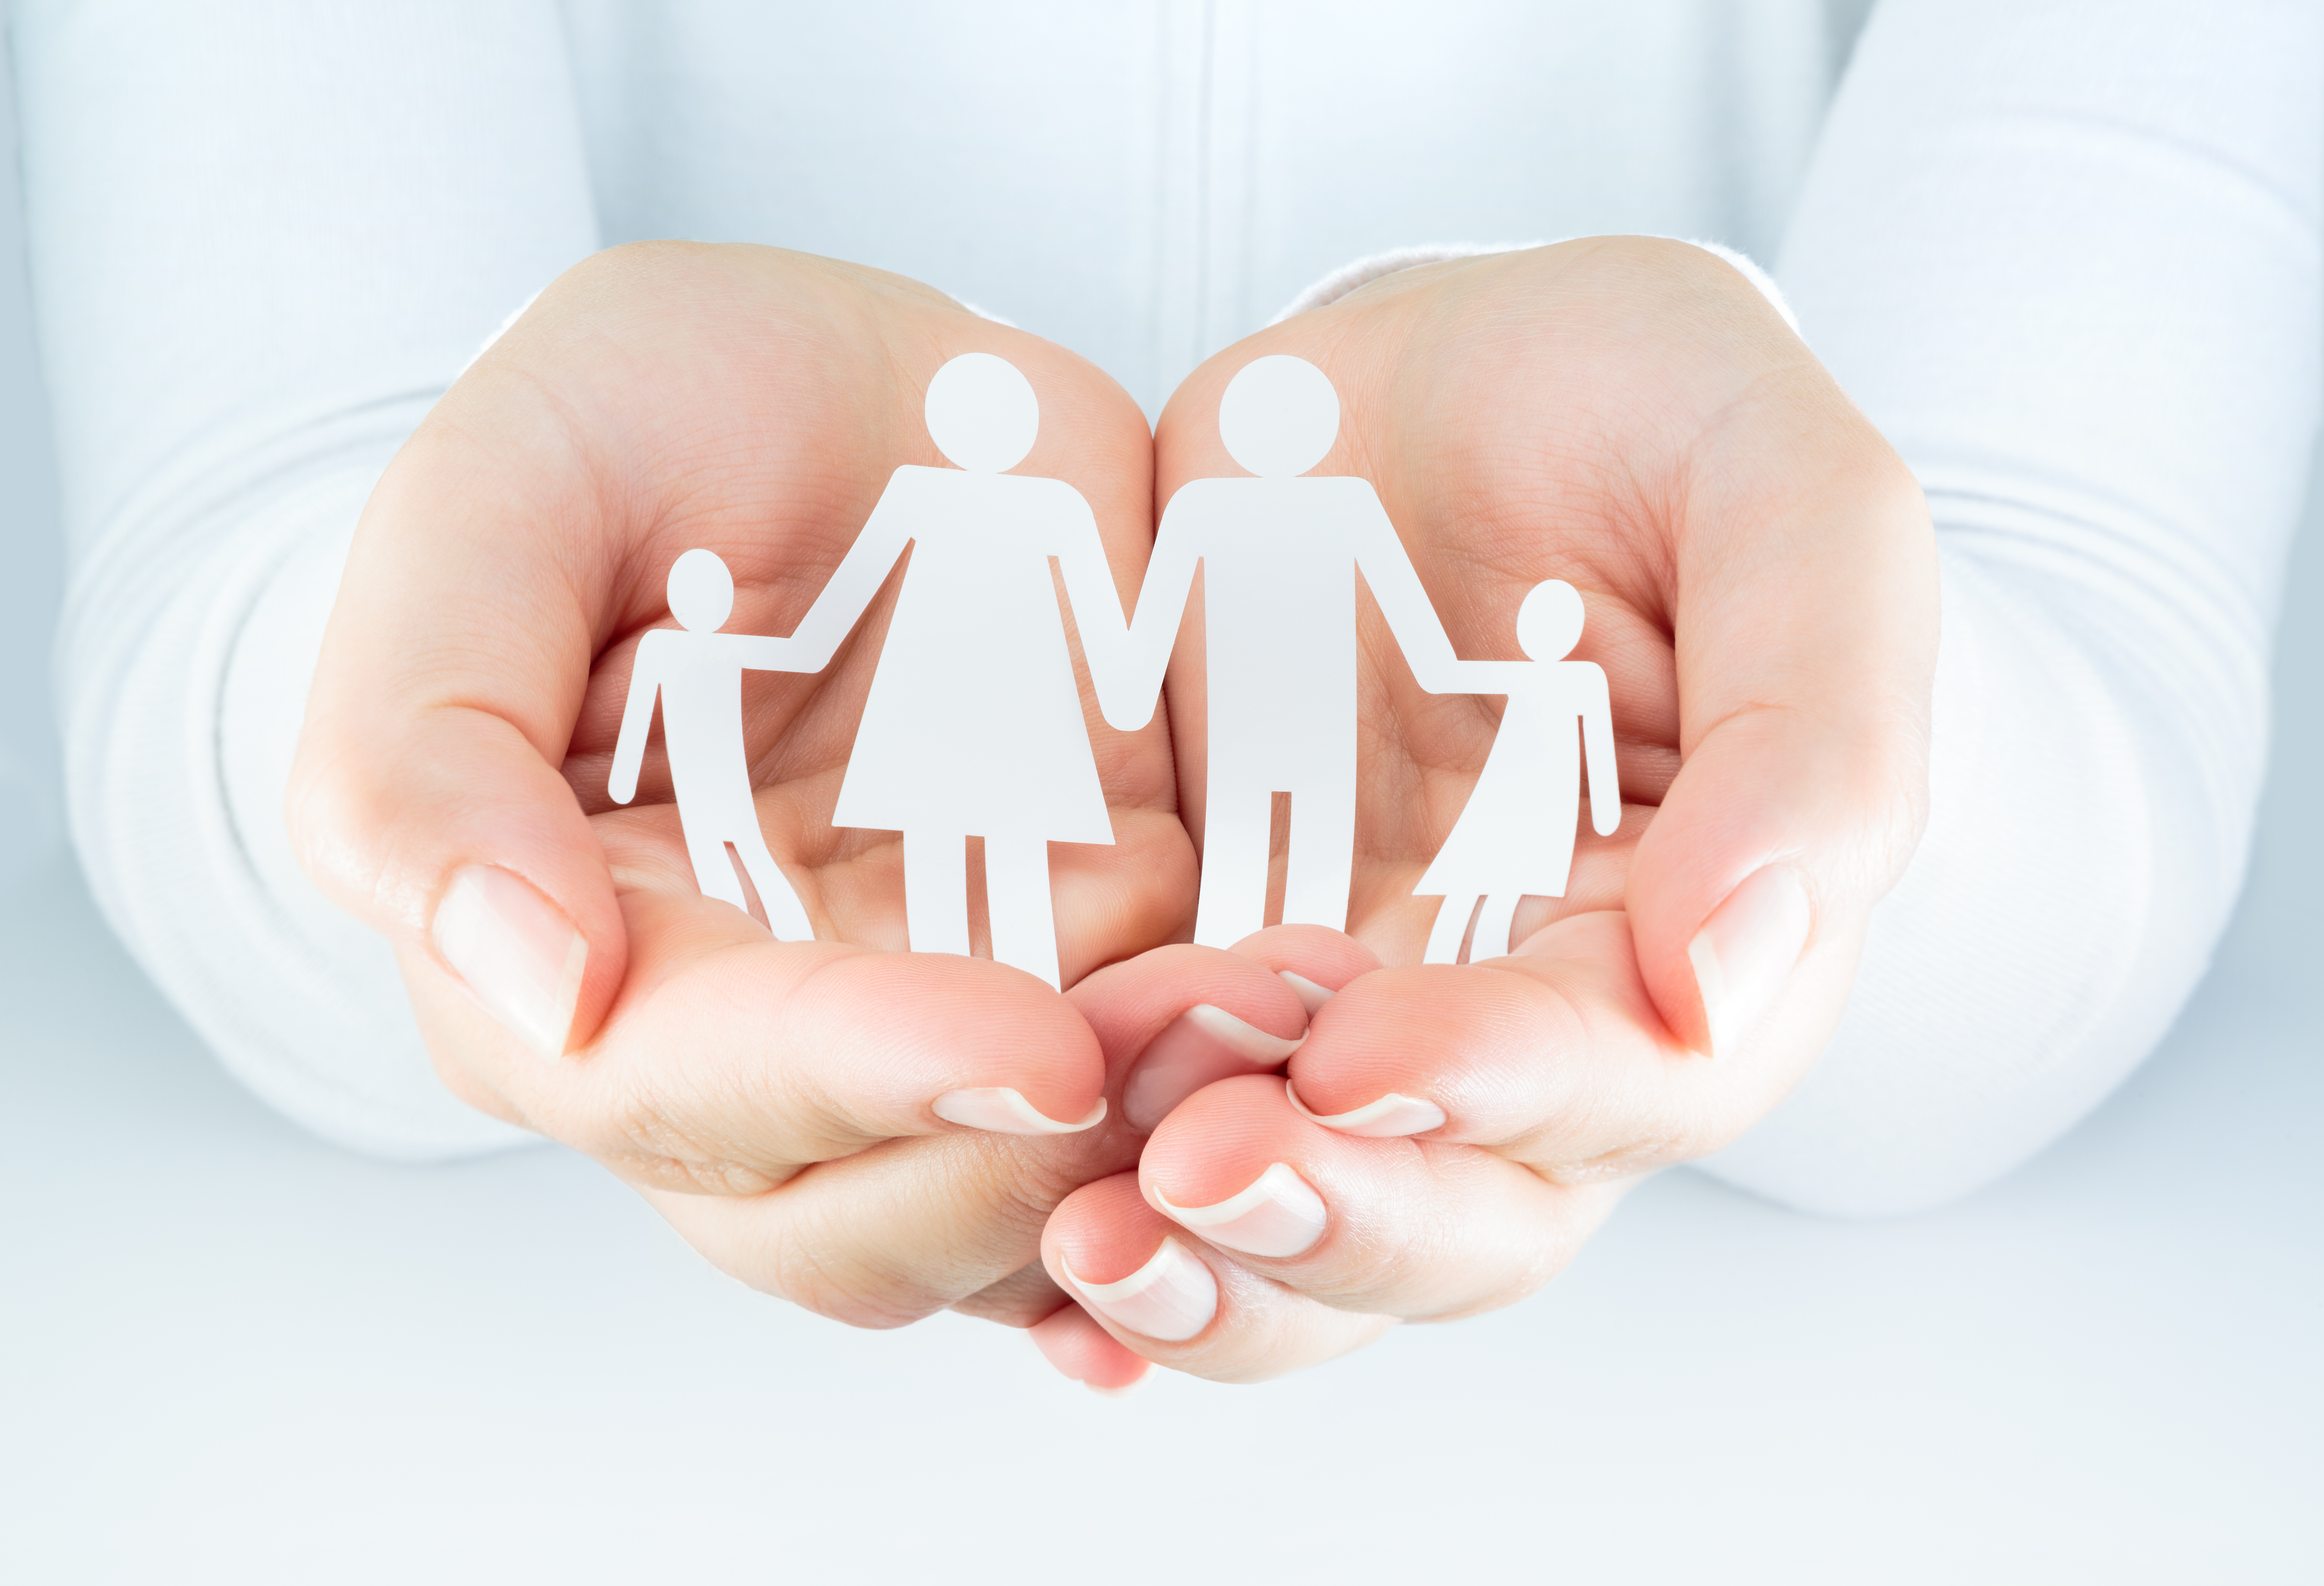 About family services at Portage